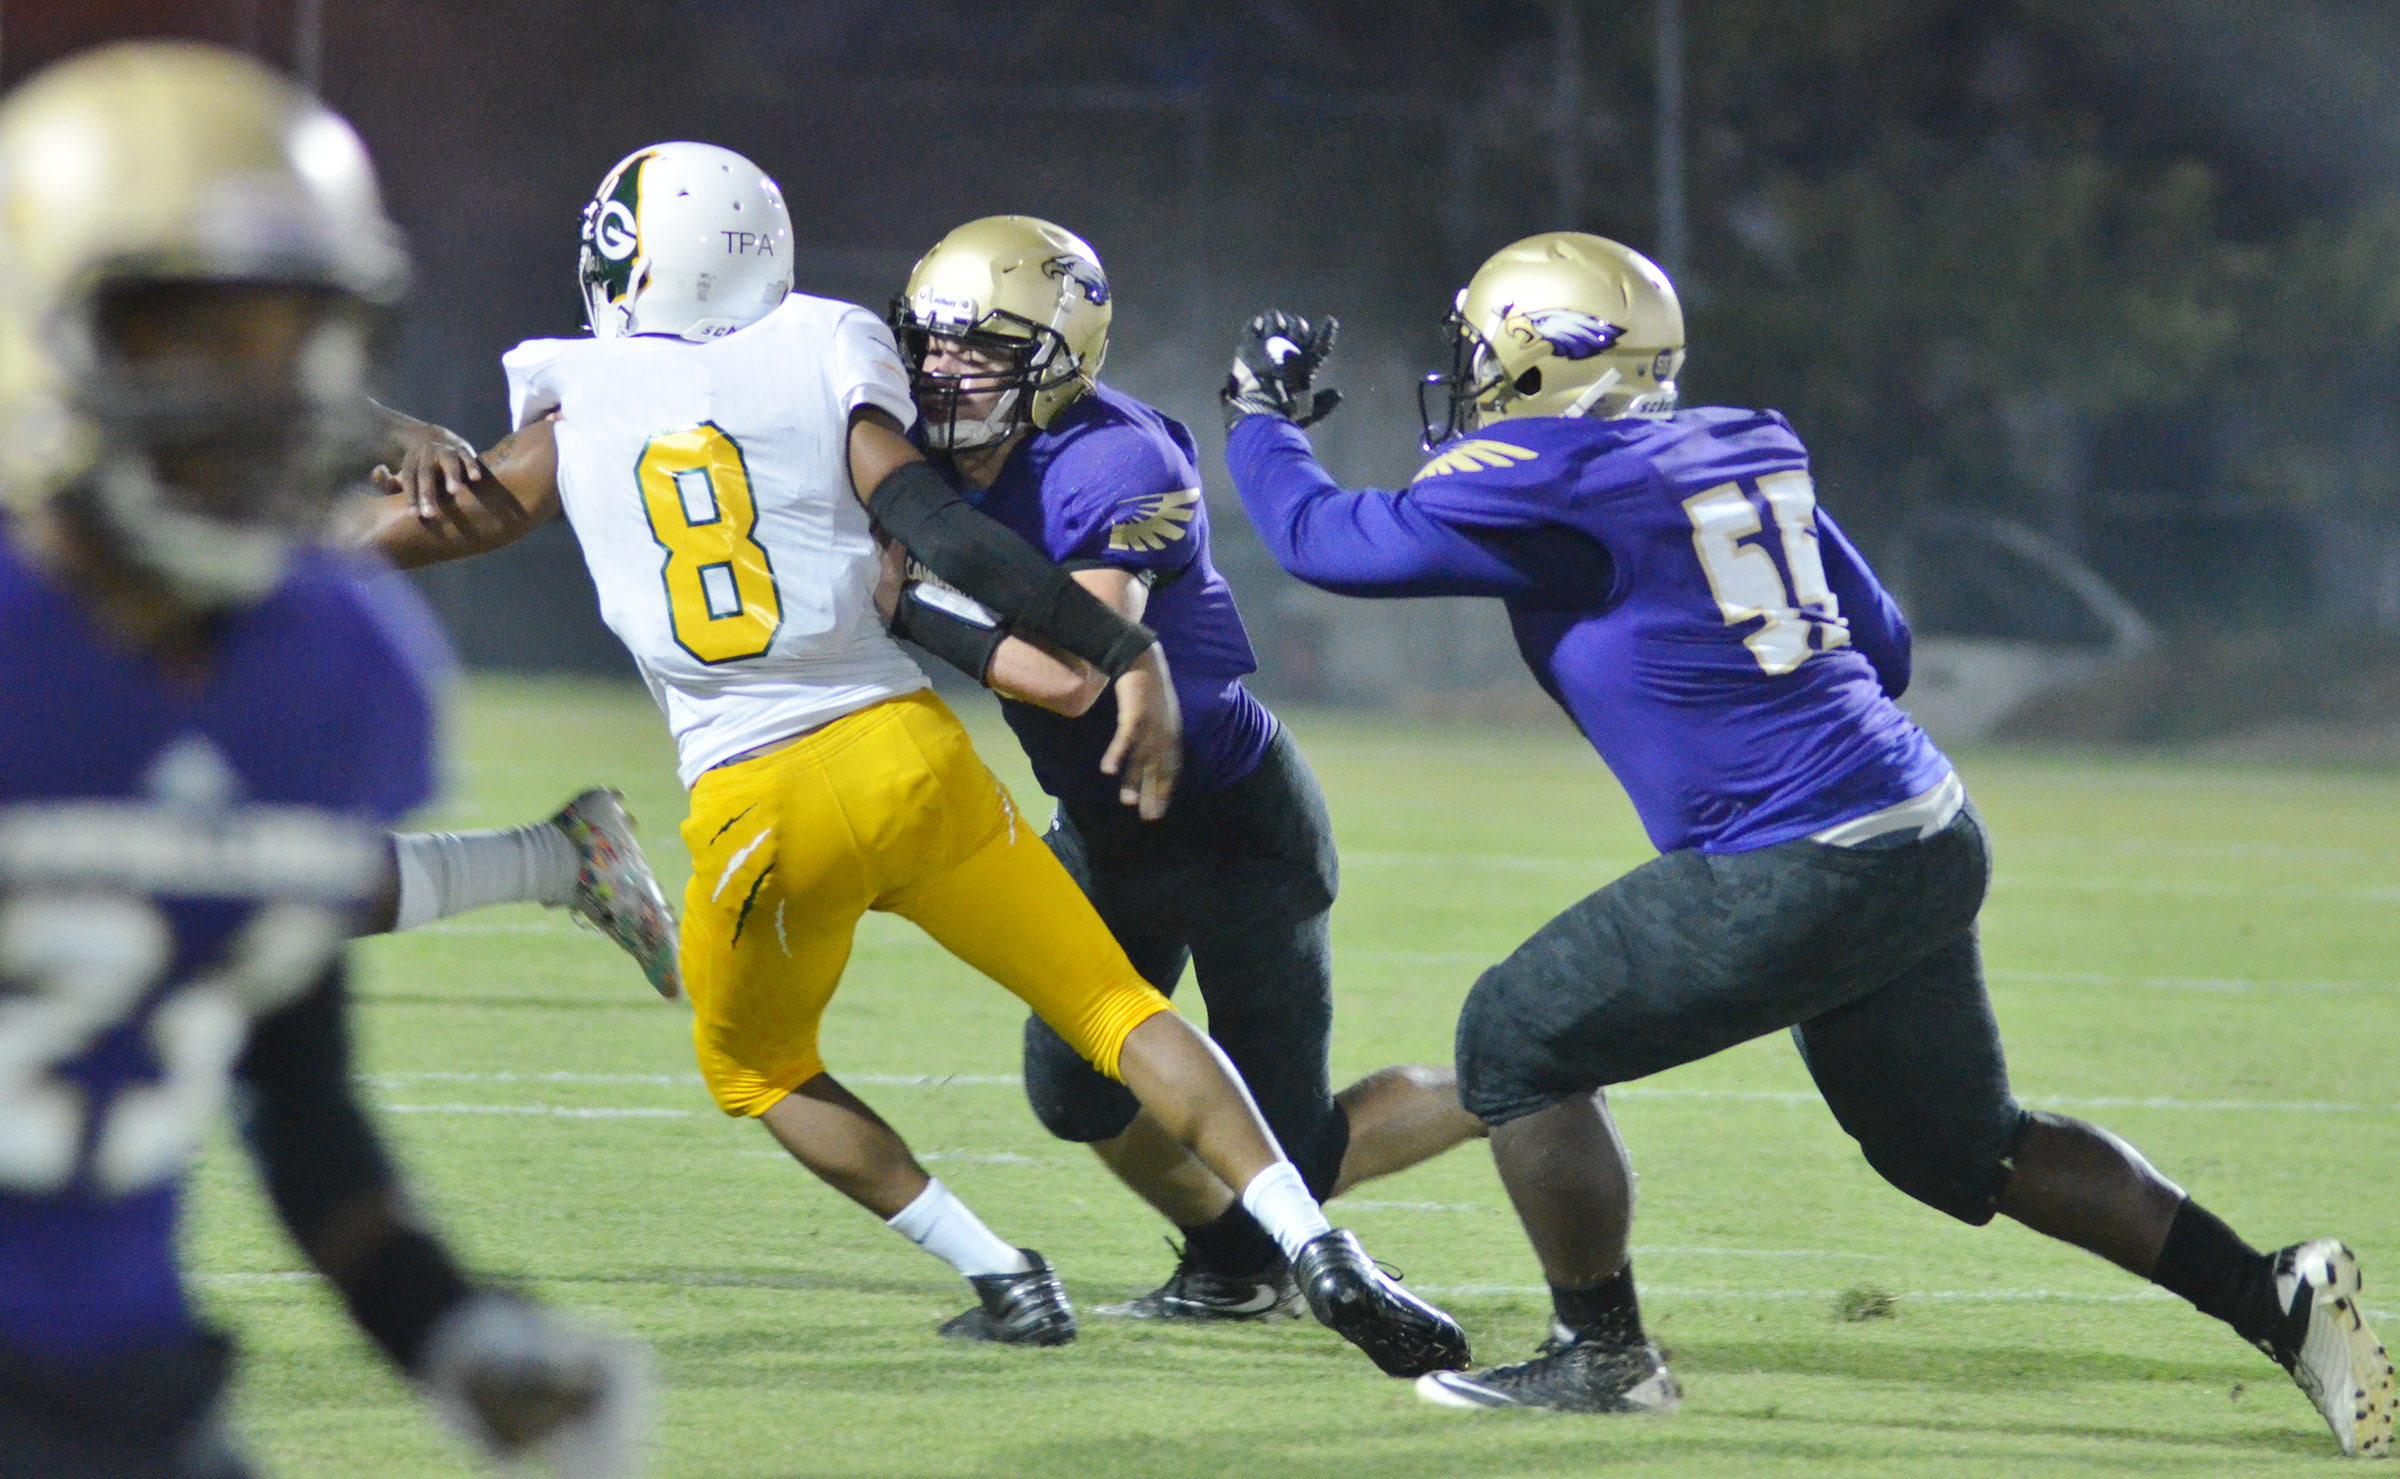 CHS junior Tristan Johnson, at left, and sophomore Taekwon McCoy tackle.